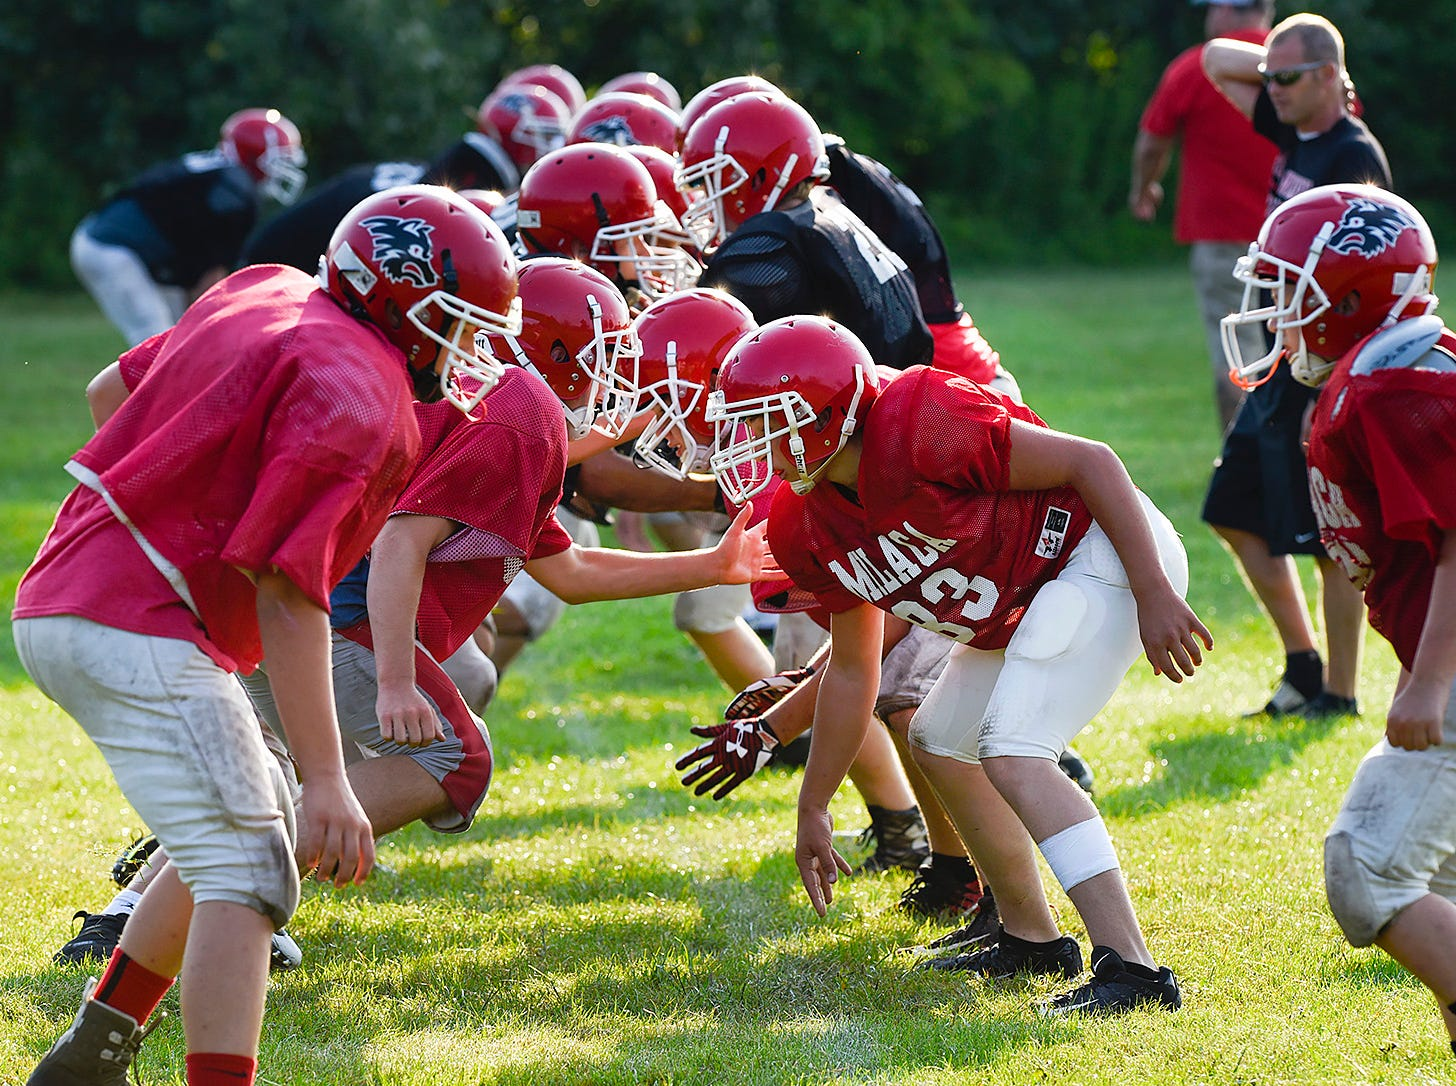 Milaca players work on their blocking assignments for a play during practice Thursday, Aug. 16, in Milaca.